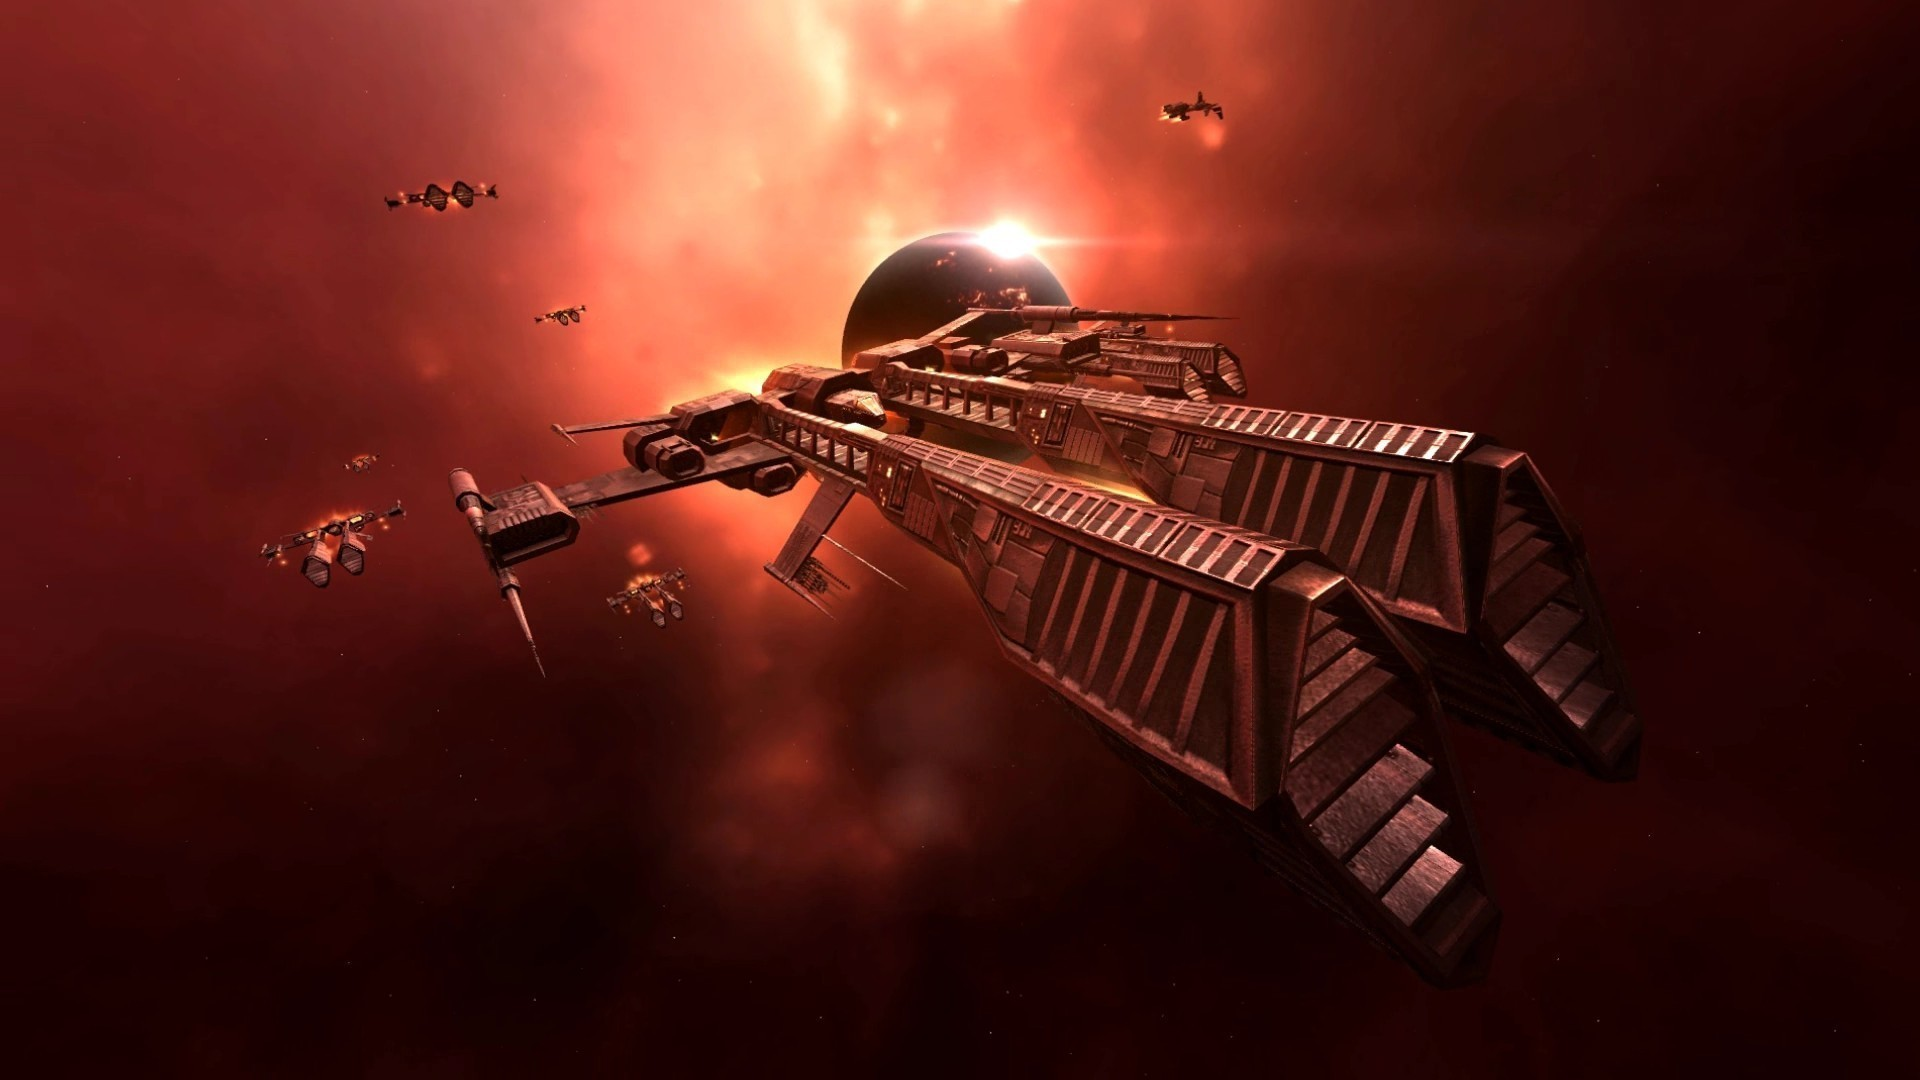 EVE Online Full HD Wallpaper And Background Image